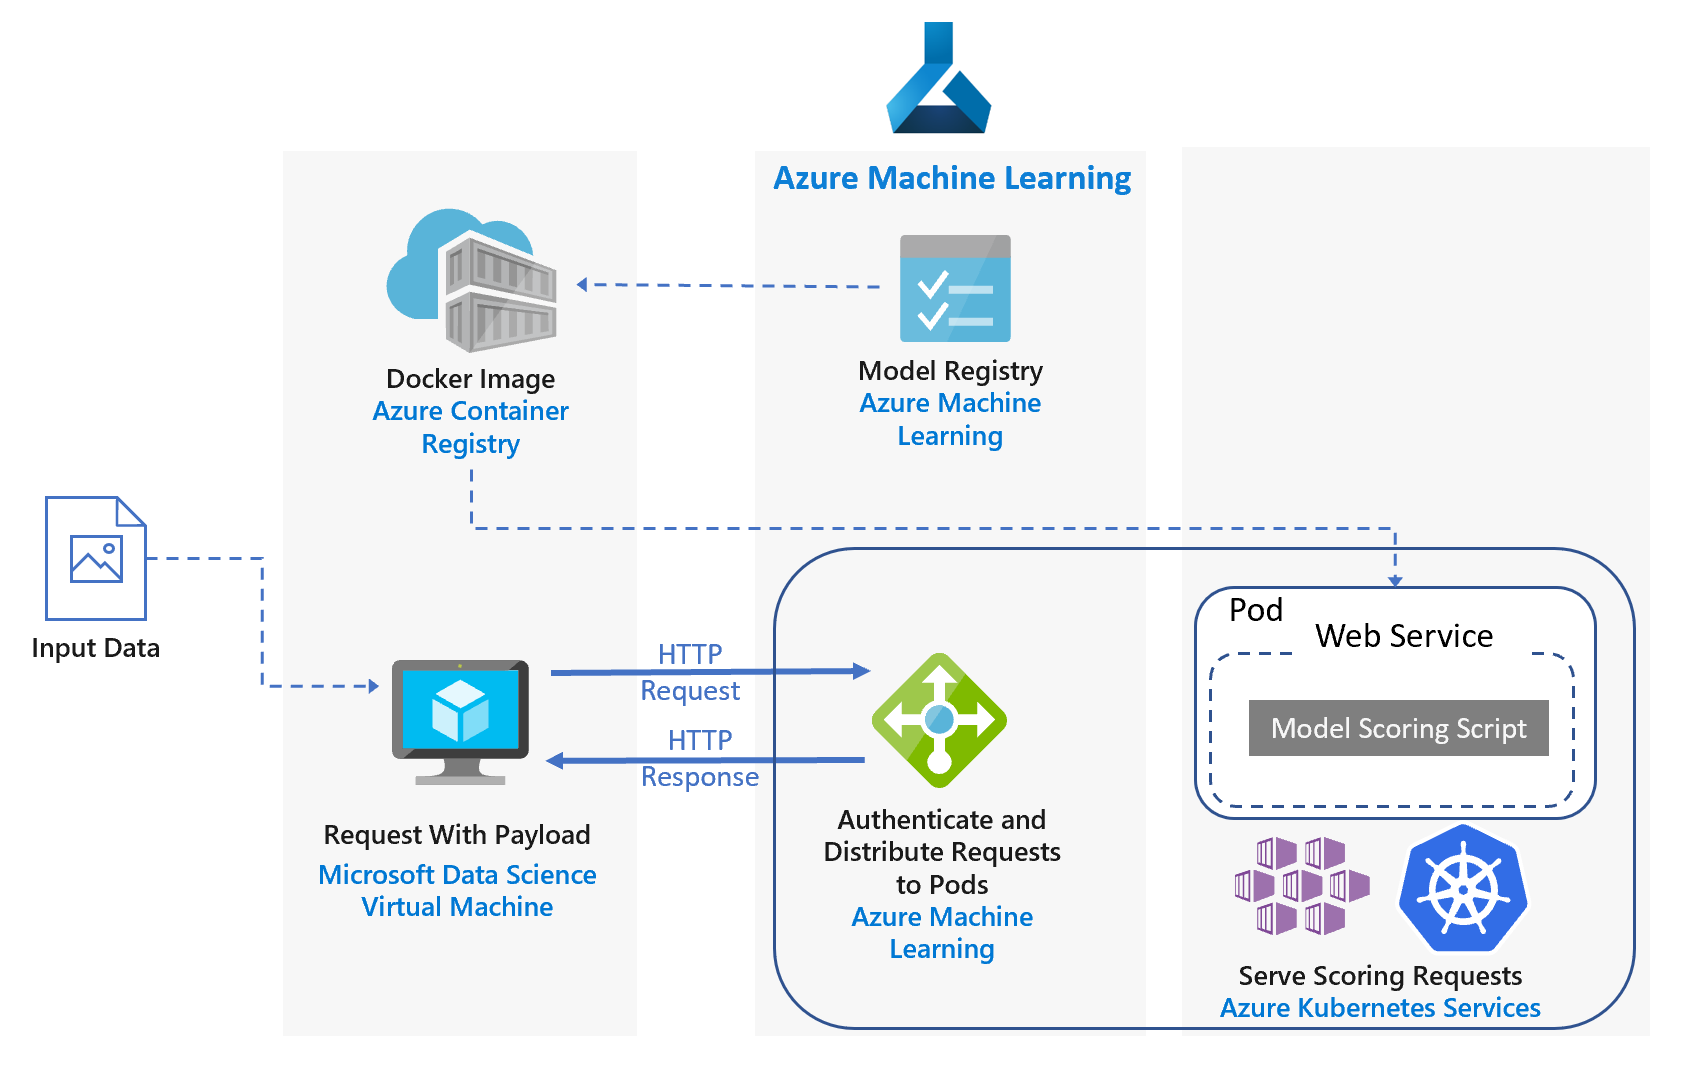 Real-time scoring of Python models - Azure Reference Architectures